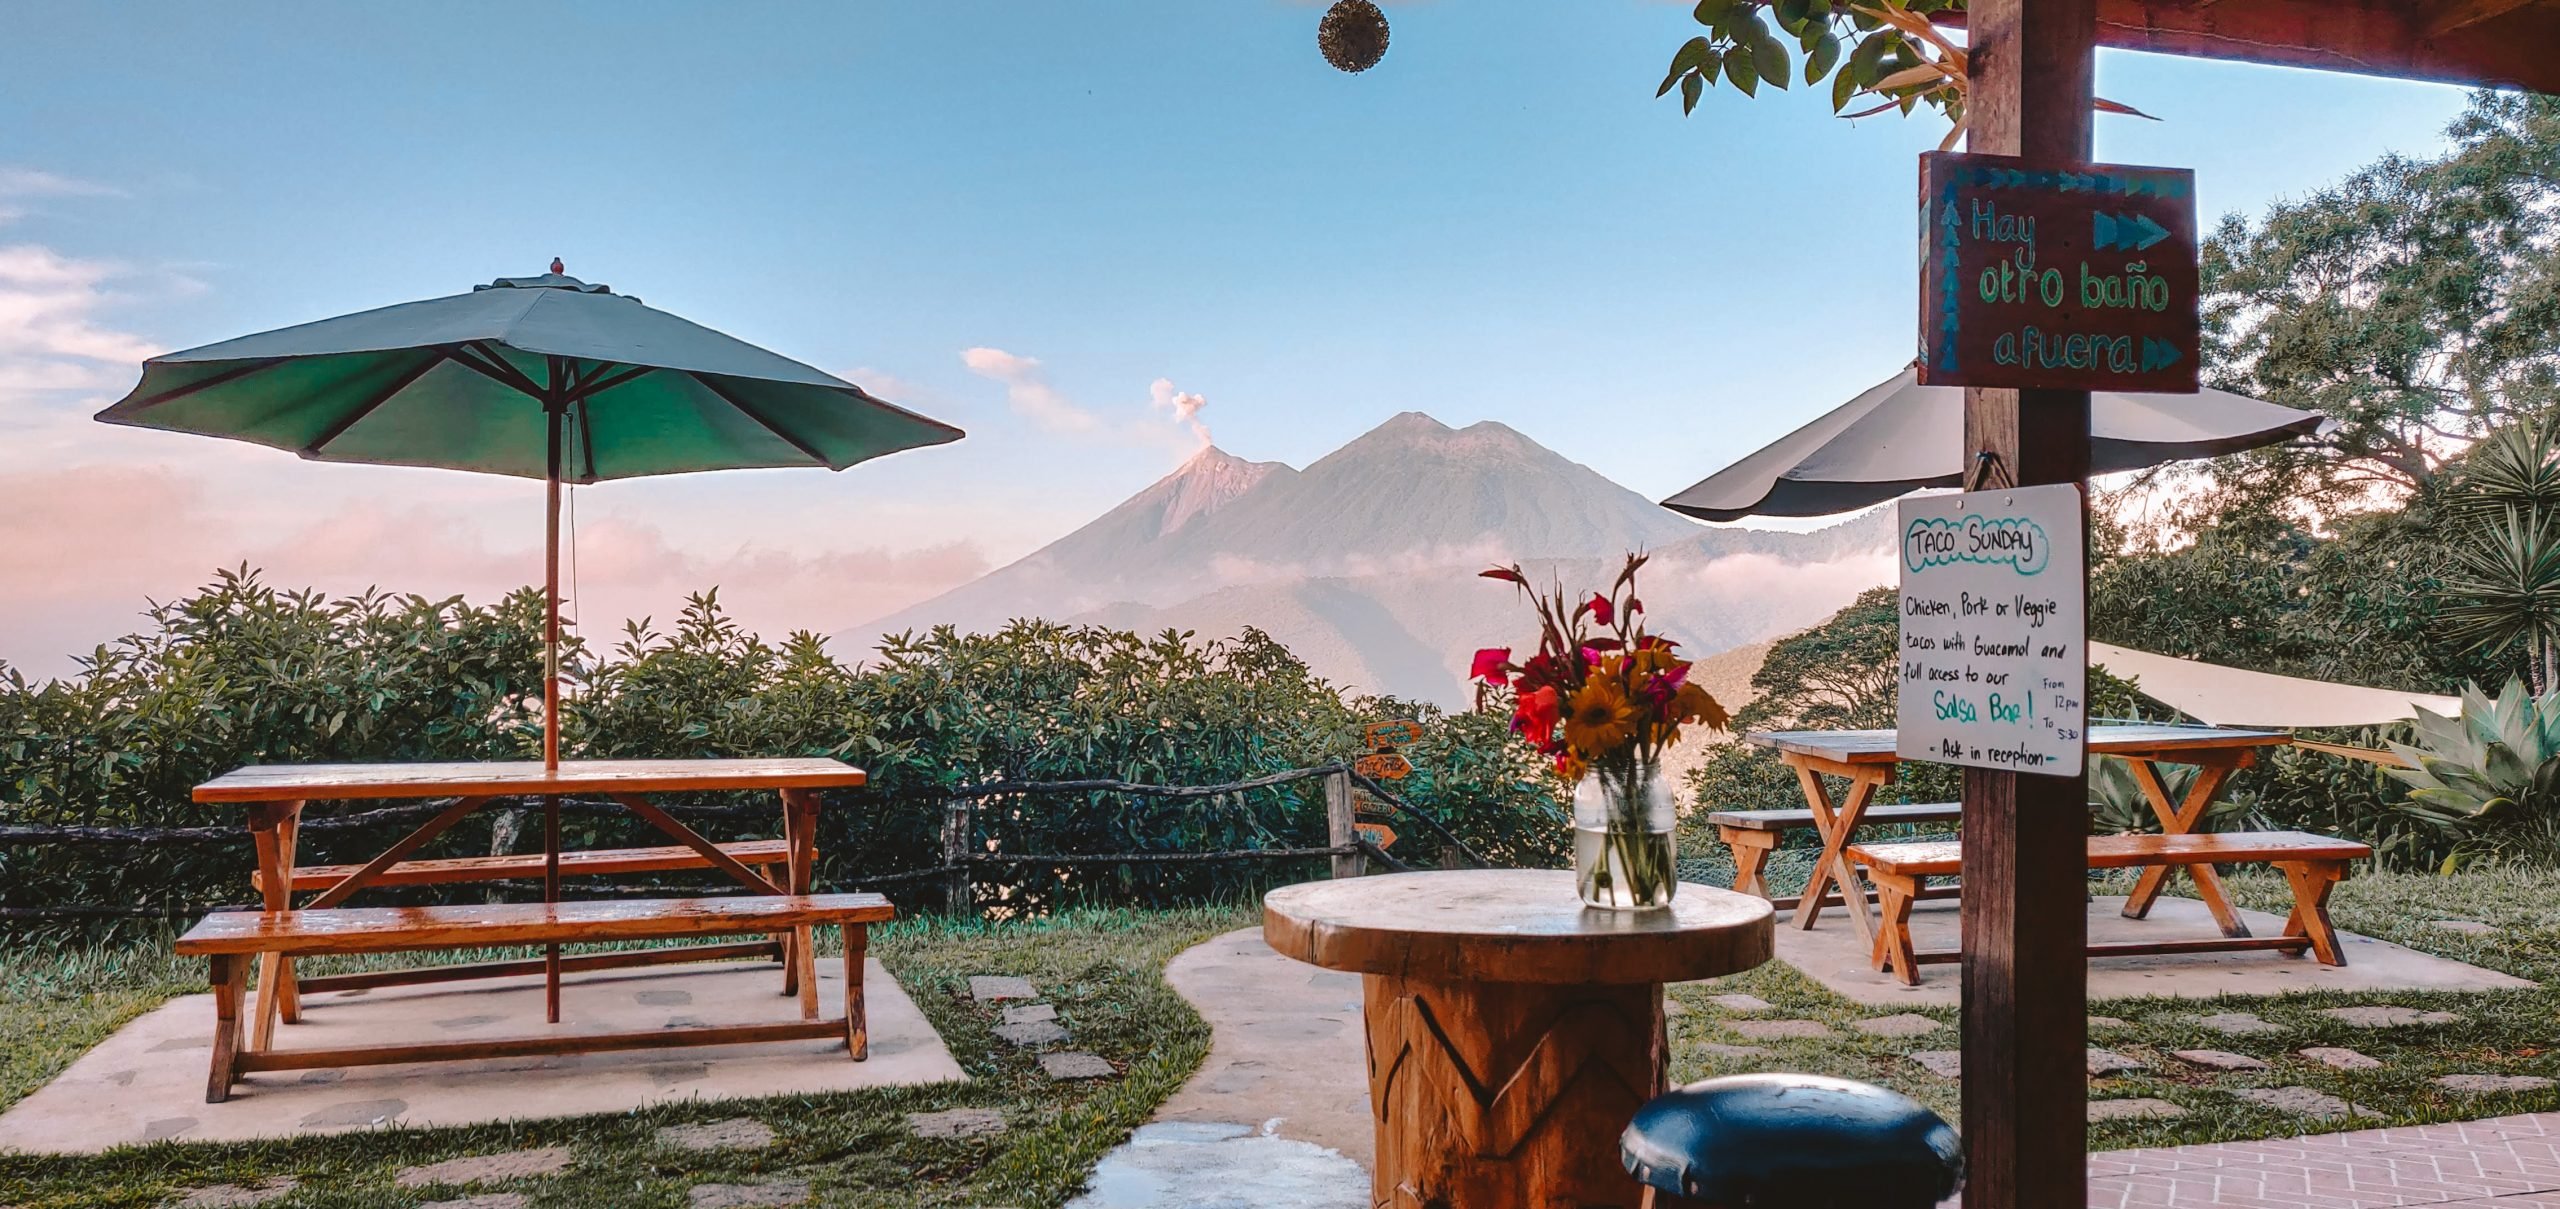 Terrace view | Earth lodge Antigua | The Orange Backpack